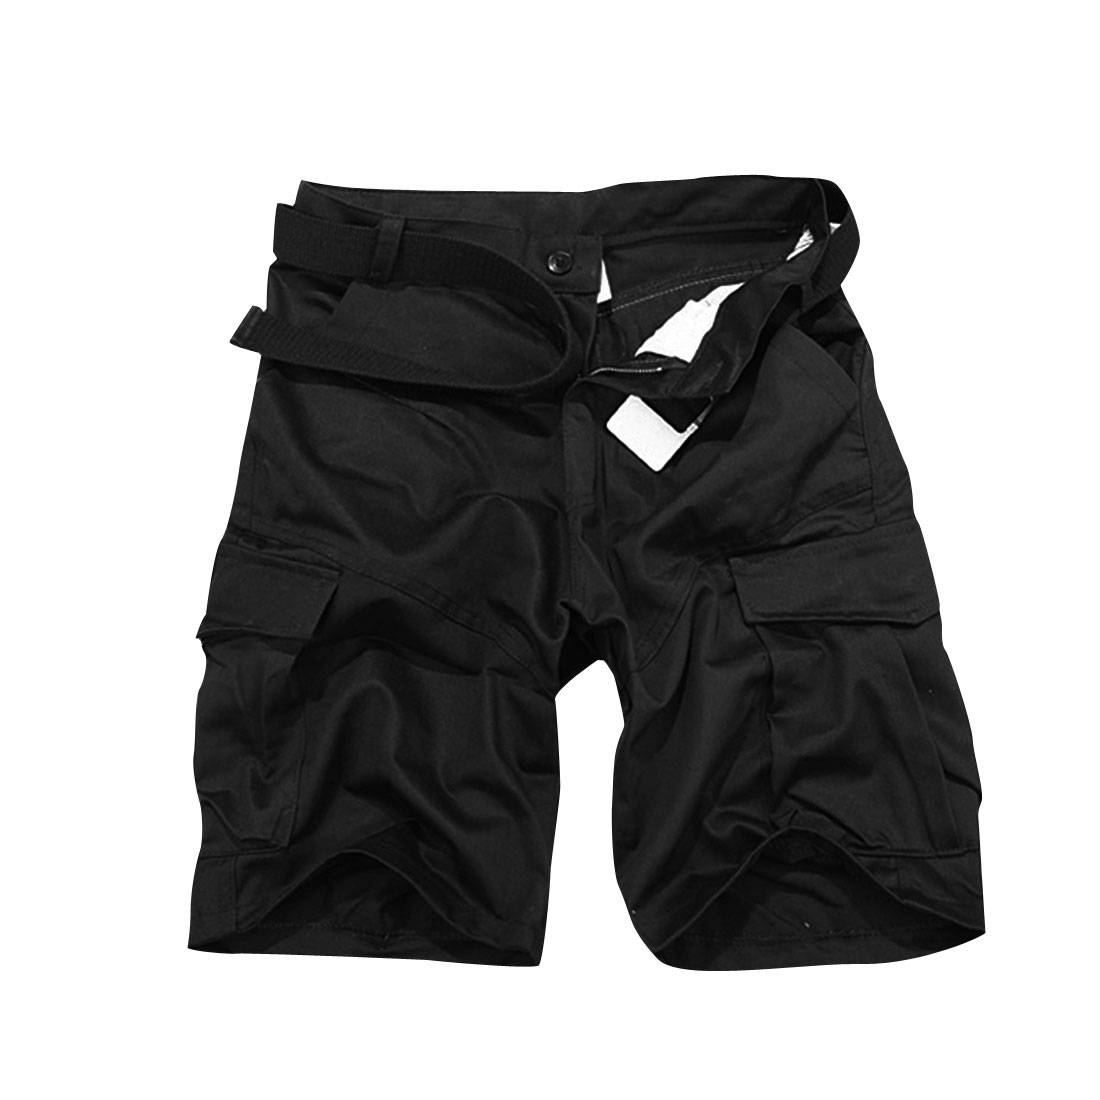 Man Hip Slant Pockets Belted Loop Fashion Shorts Trousers Black W32